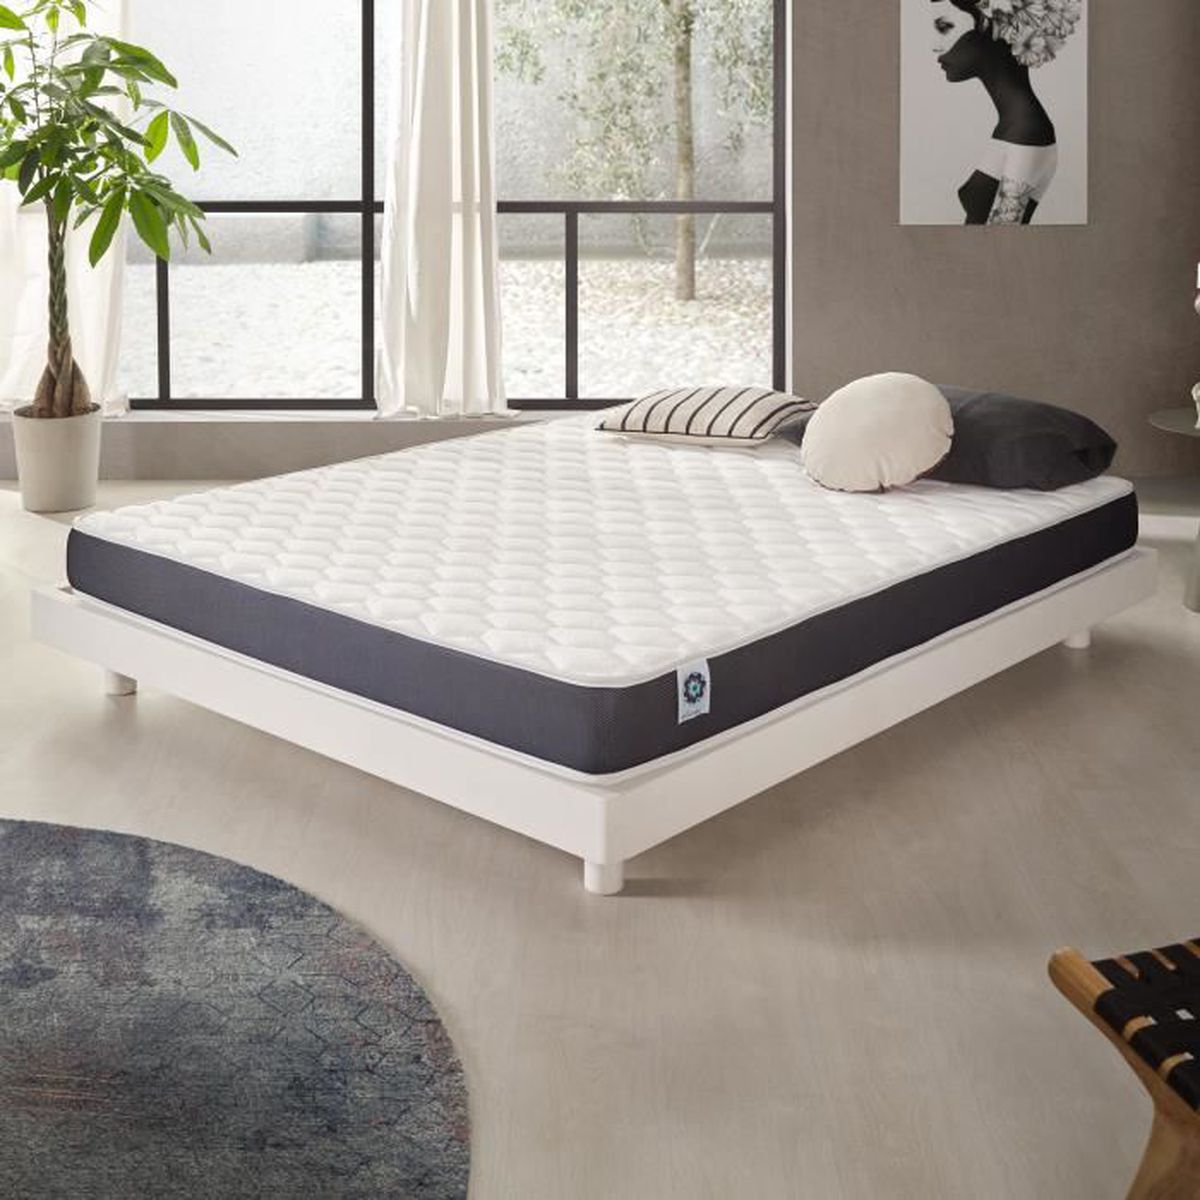 matelas ergolatex 90x200 cm mousse blue latex lit adulte. Black Bedroom Furniture Sets. Home Design Ideas